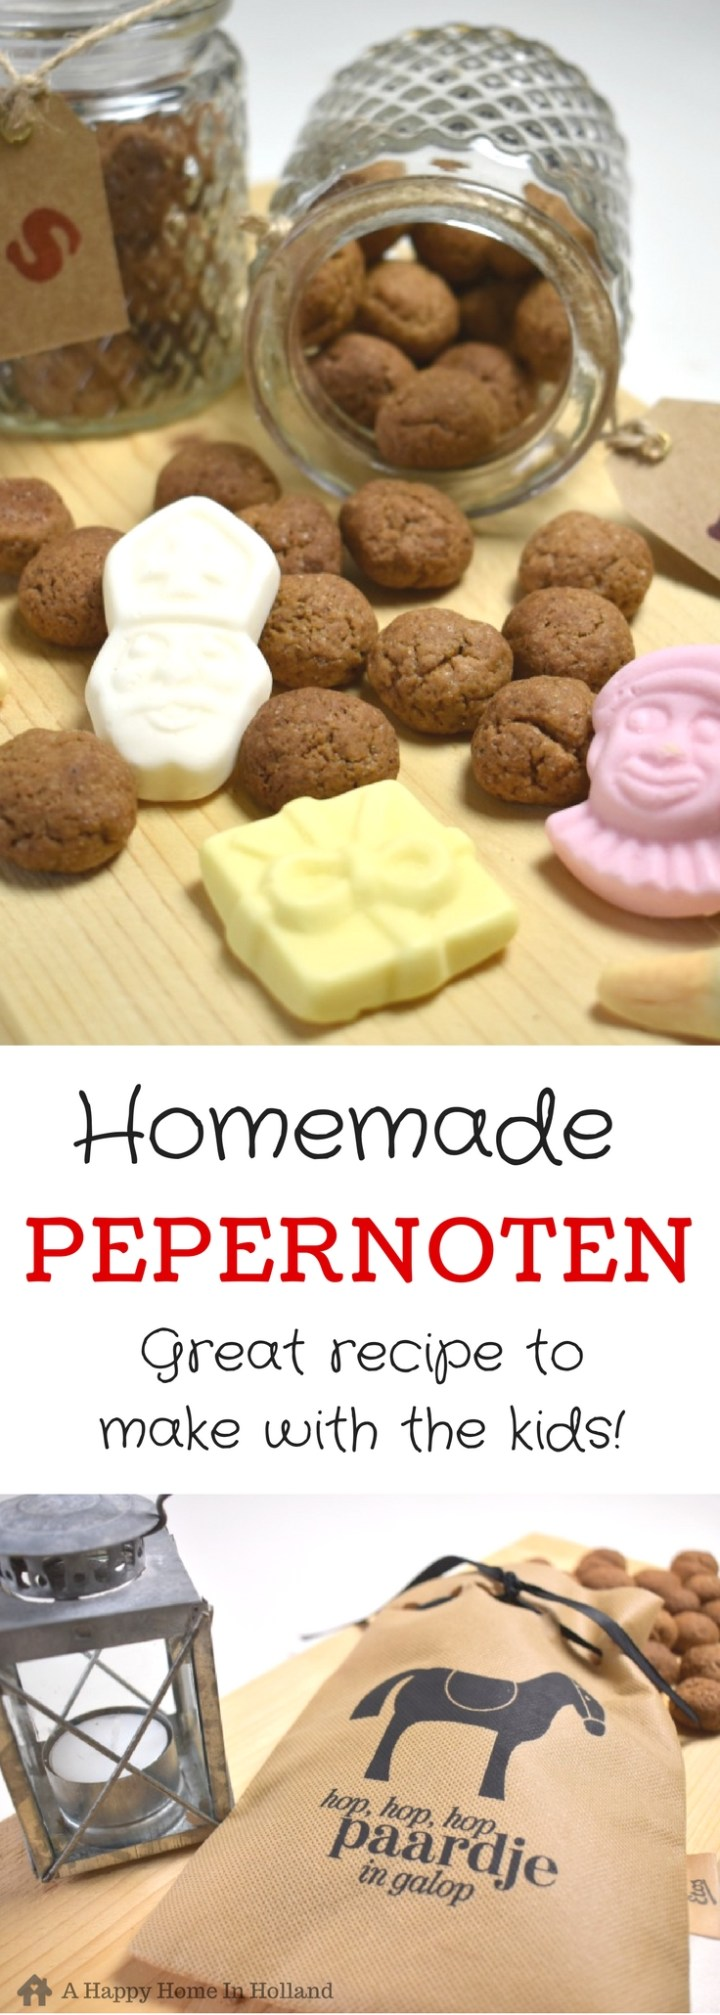 Pepernoten Recipe - Dutch Mini Spiced Cookies - Delicious & Fun Recipe To Cook With The Kids